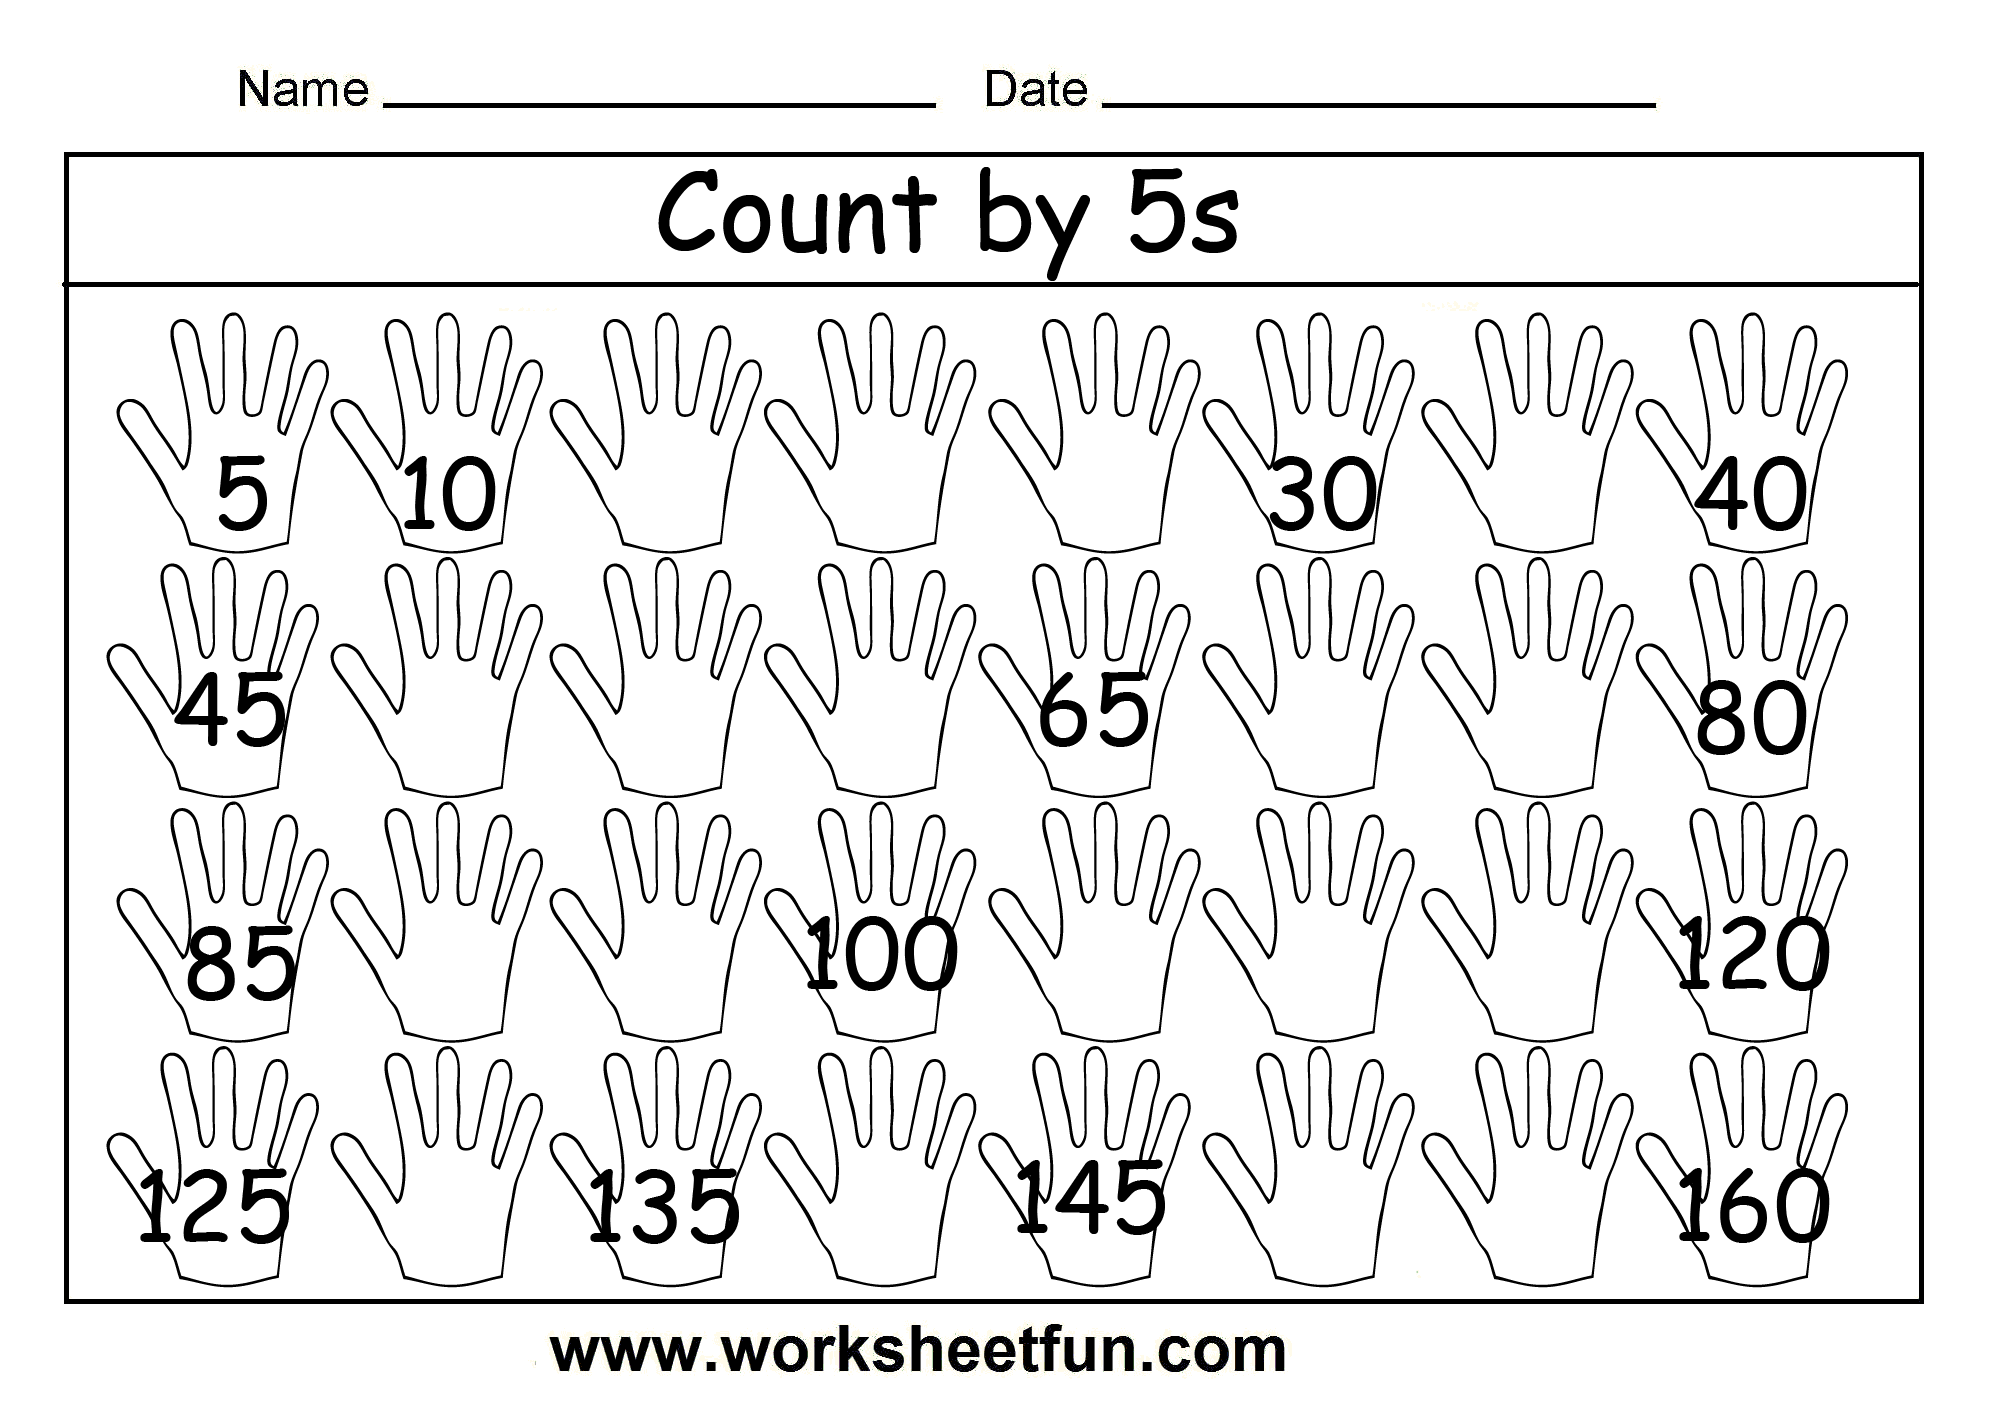 Count By 5s 2 Worksheets Free Printable Worksheets